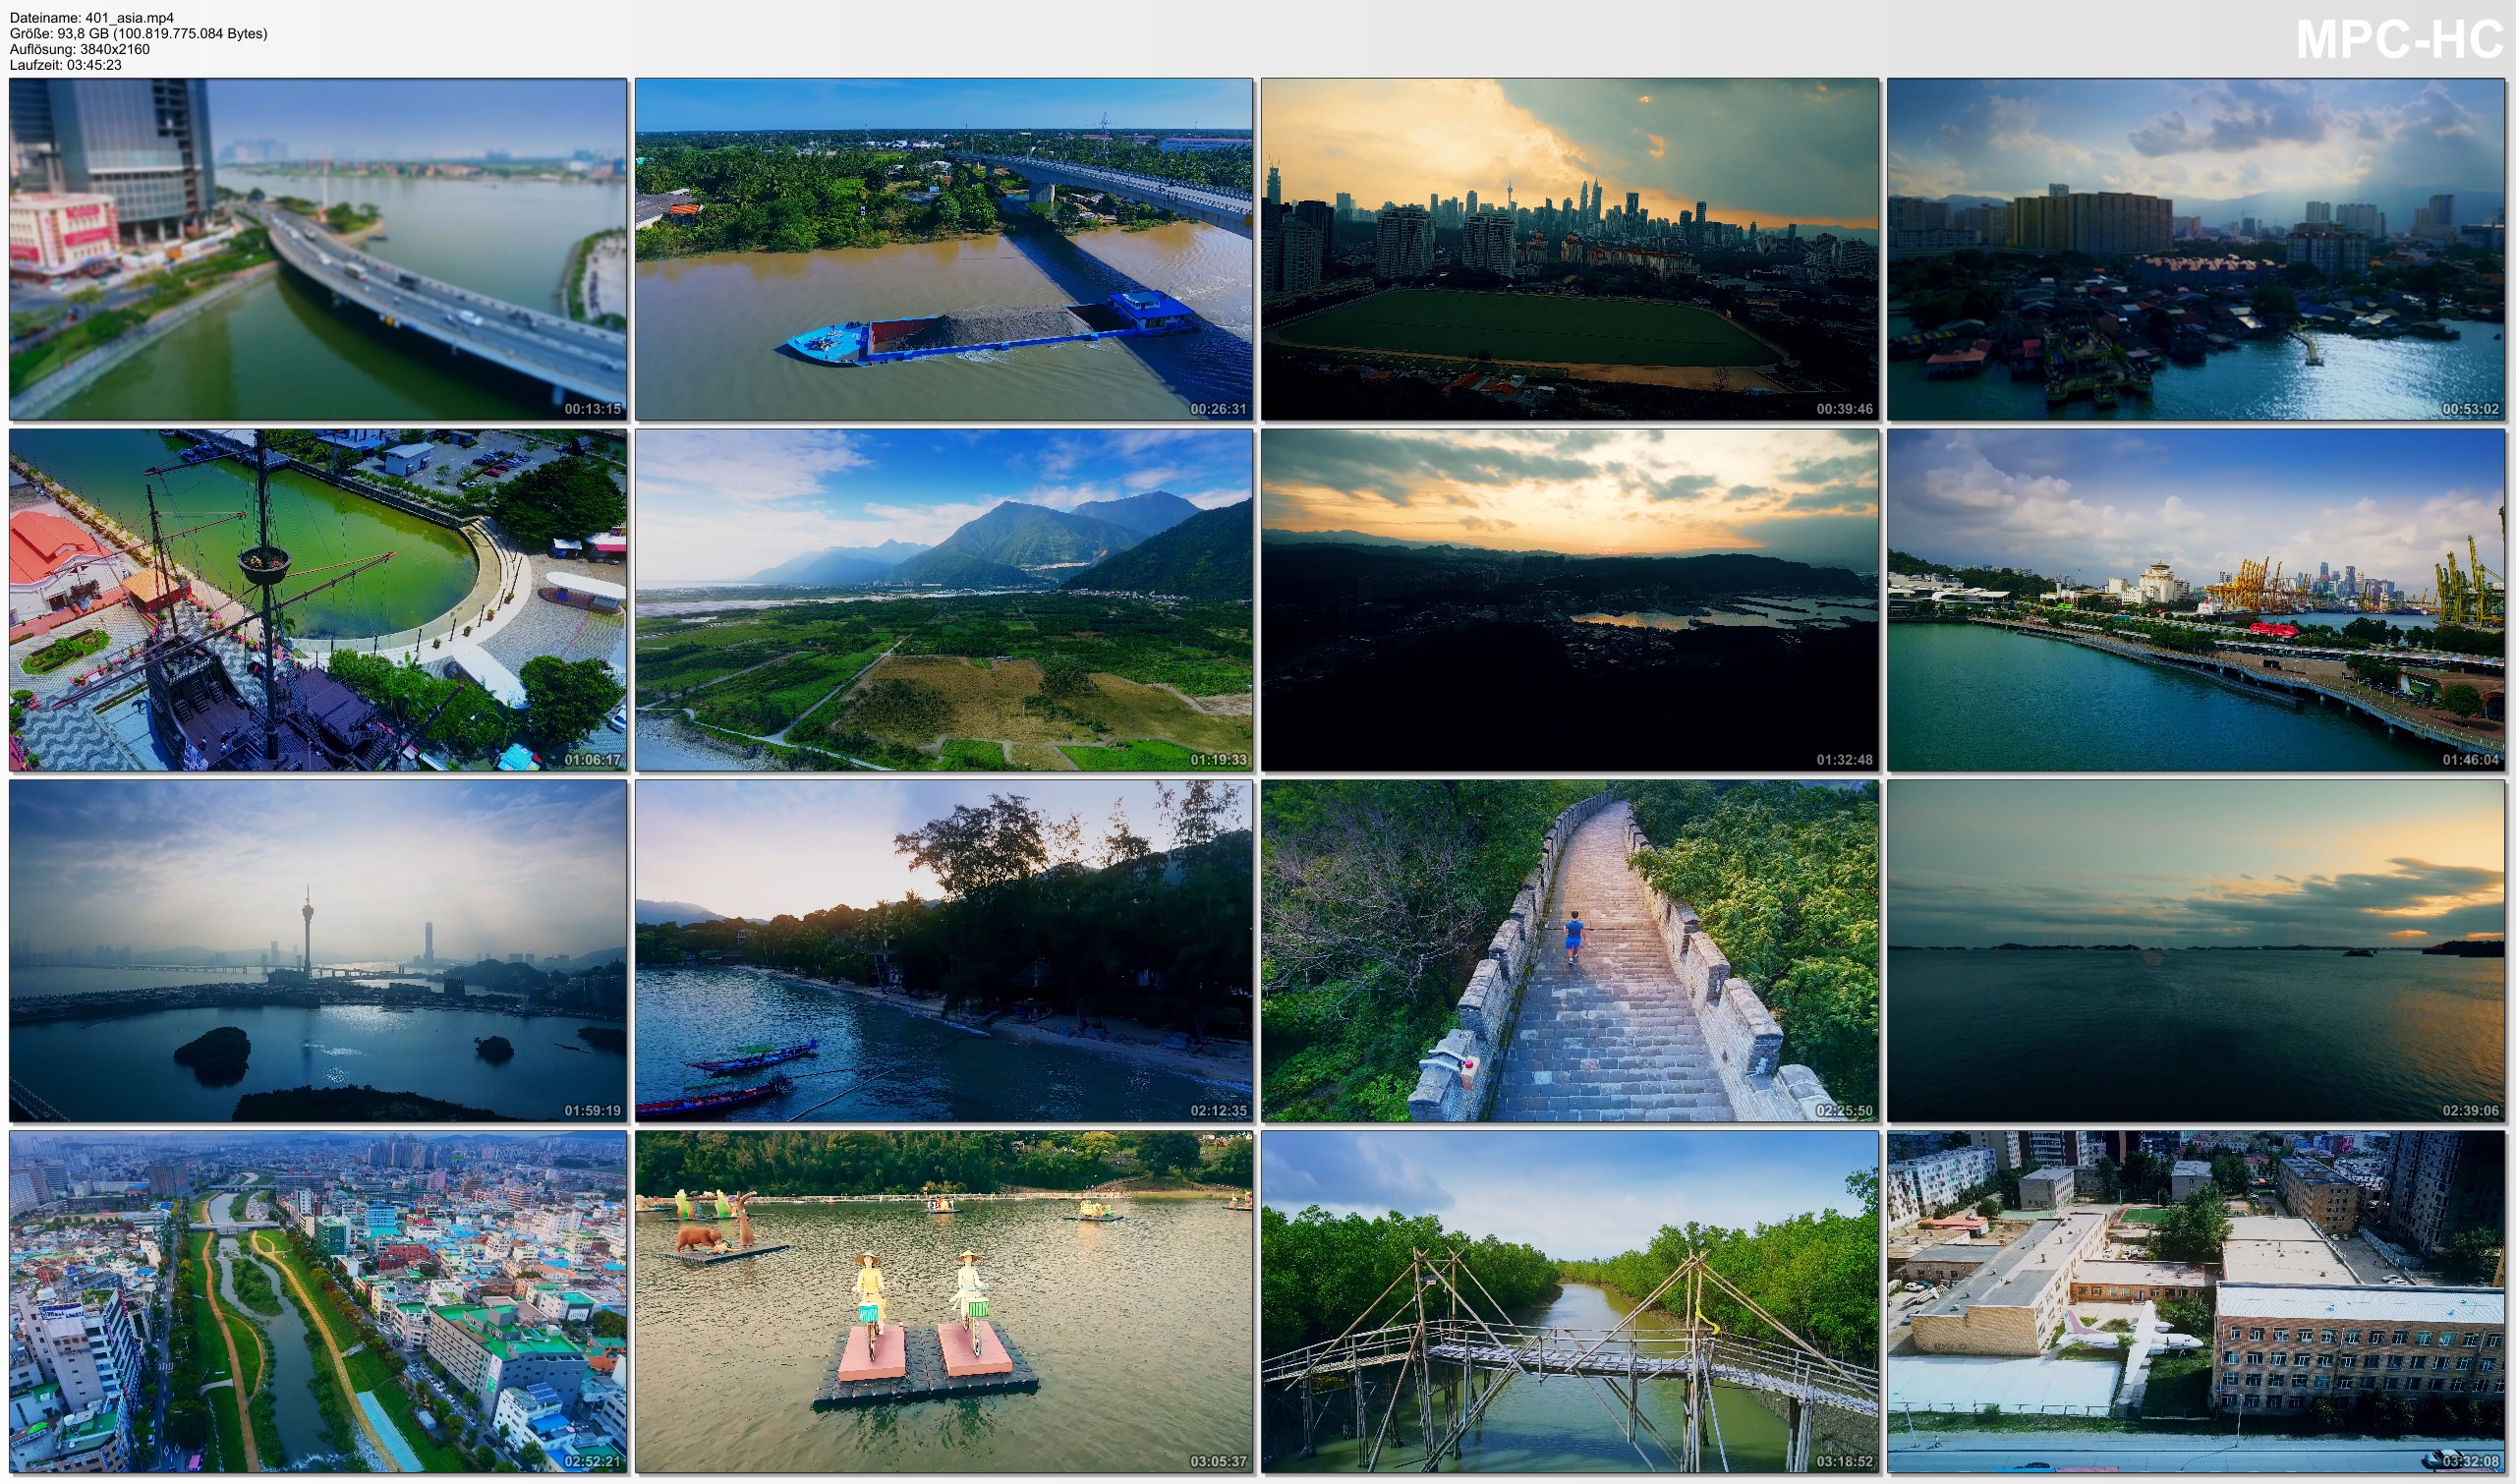 Drone Pictures from Video 【4K】ASIA as you have never seen before 2019 | 3 ¾ Cinematic Hours Aerial Film